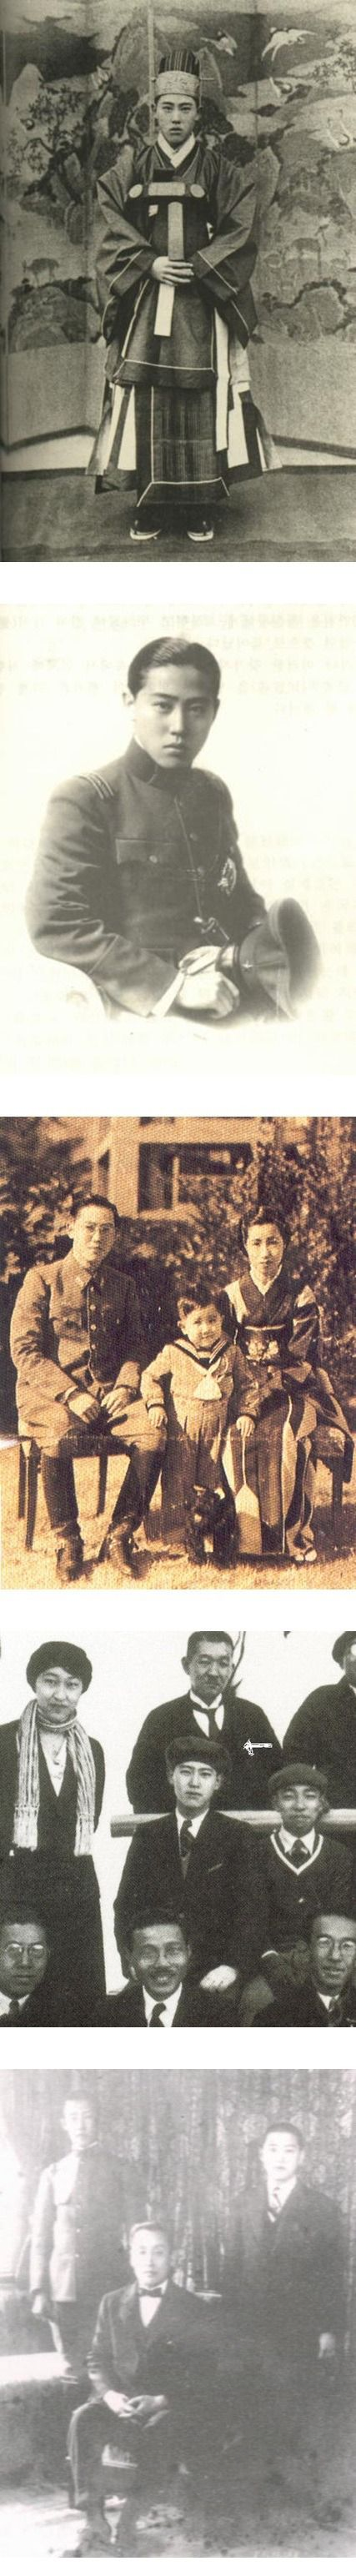 흥영군 이우  Colonel Yi Wu (15 November 1912 – 7 August 1945), was the 4th head of Unhyeon Palace, a member of the imperial family of Korea, and a Lieutenant Colonel in the Imperial Japanese Army during the Second World War.  He died in the atomic blast at Hiroshima on August 6, 1945 where he was serving as a Lieutenant Colonel in the Imperial Japanese Army.  He was buried  in Heungwon, Korea on 15 August 1945, the day WWII  ended.